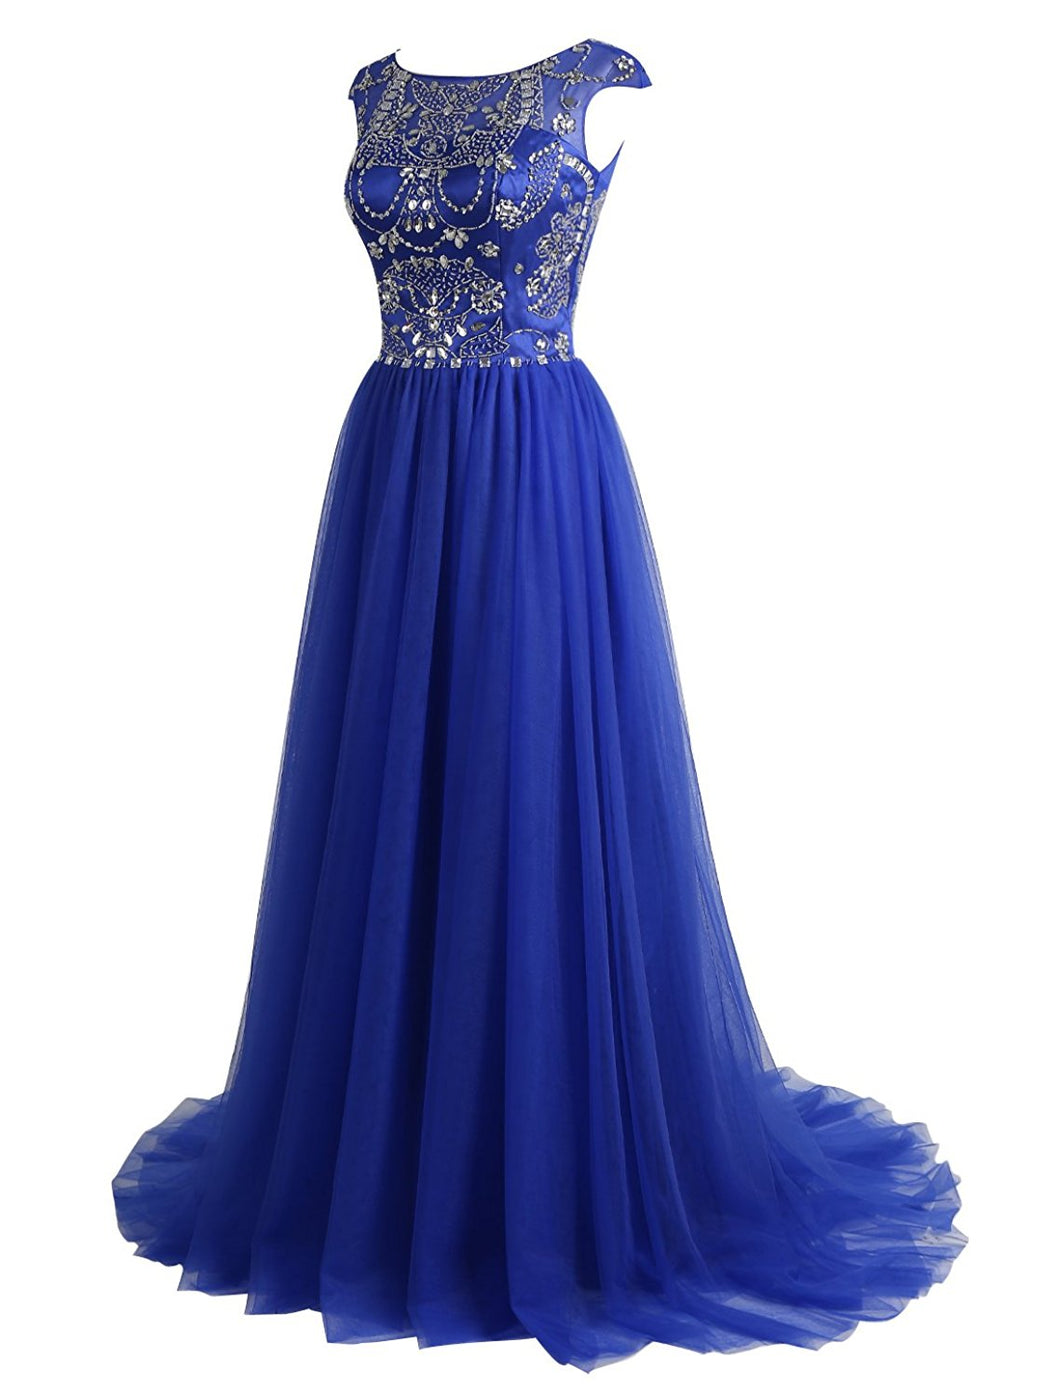 Sexy Prom Dresses Scoop Sweep/Brush Train Royal Blue Tulle Prom Dress/Evening Dress JKL289